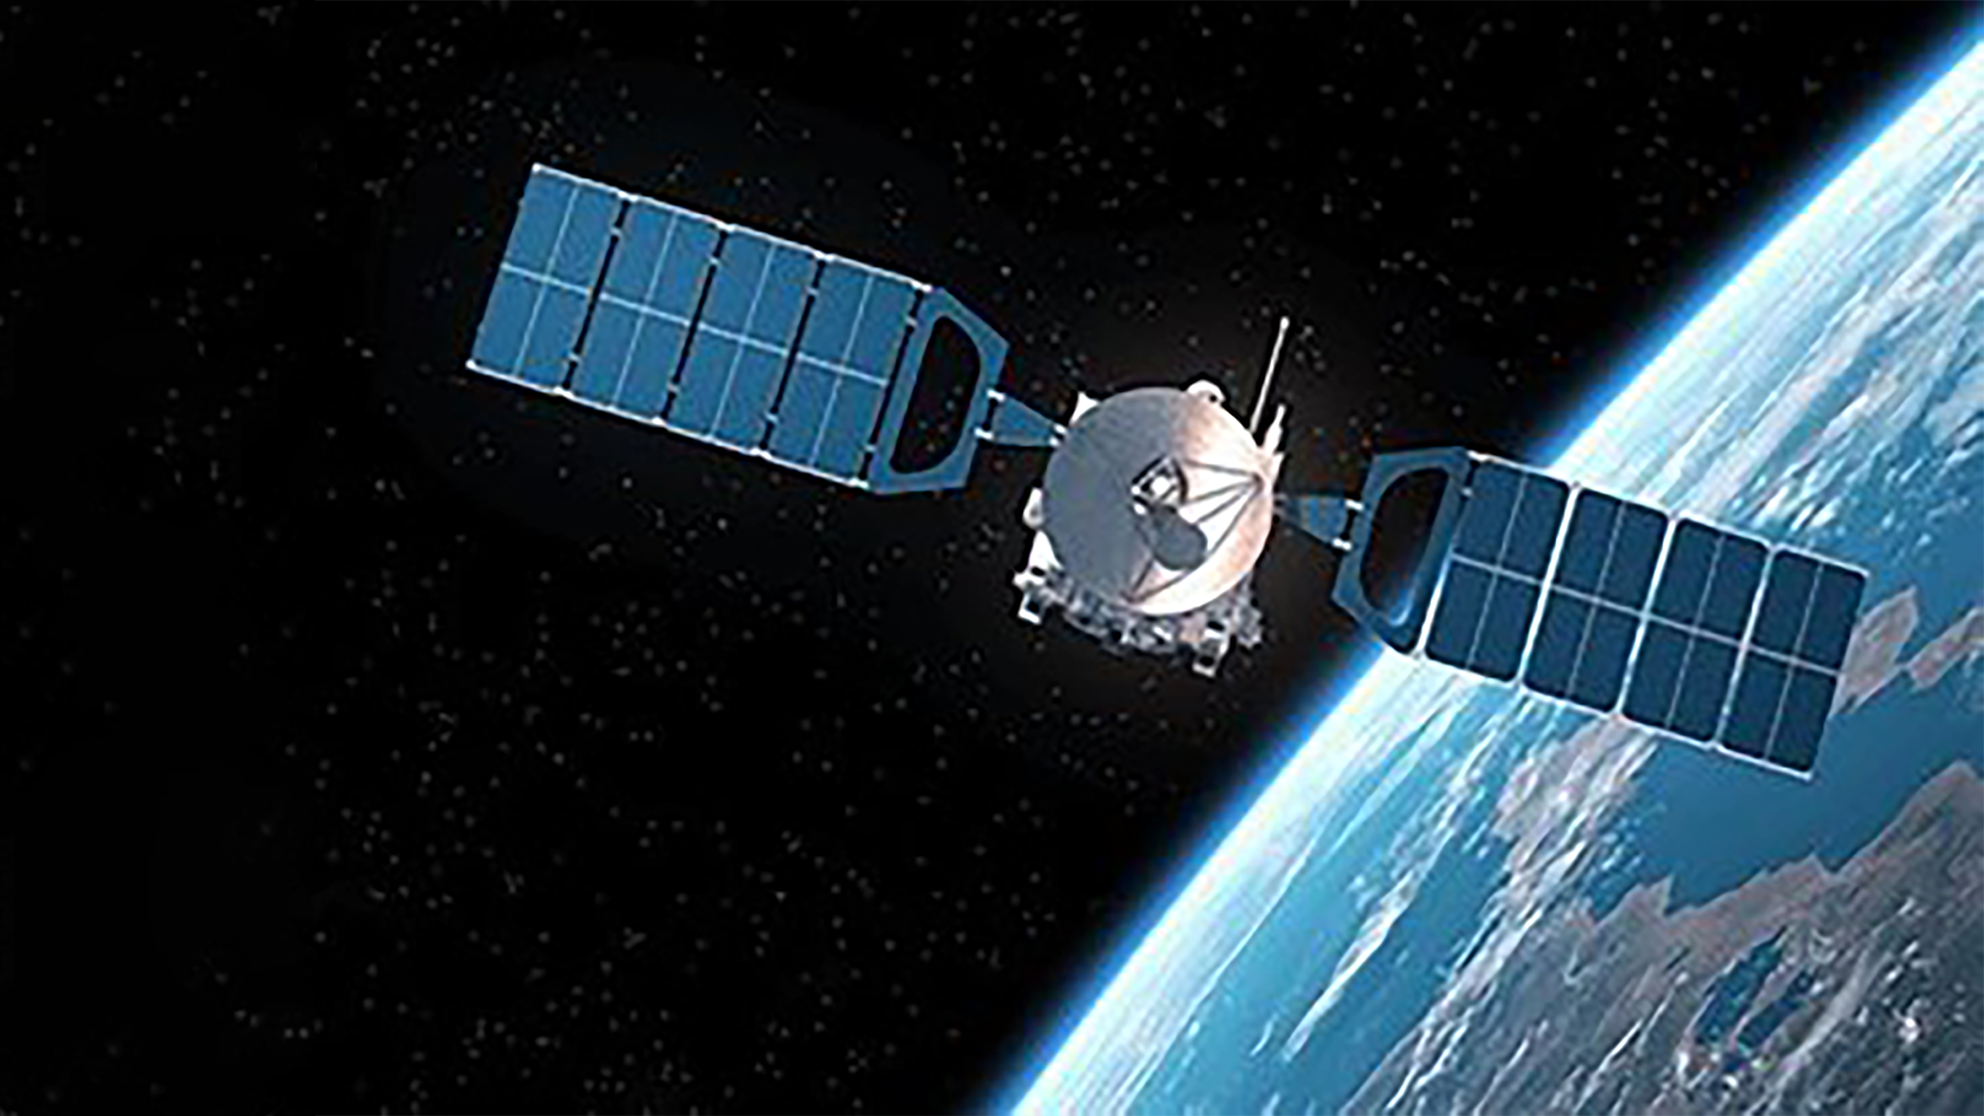 A graphic showing a satellite floating in space in Earth's orbit